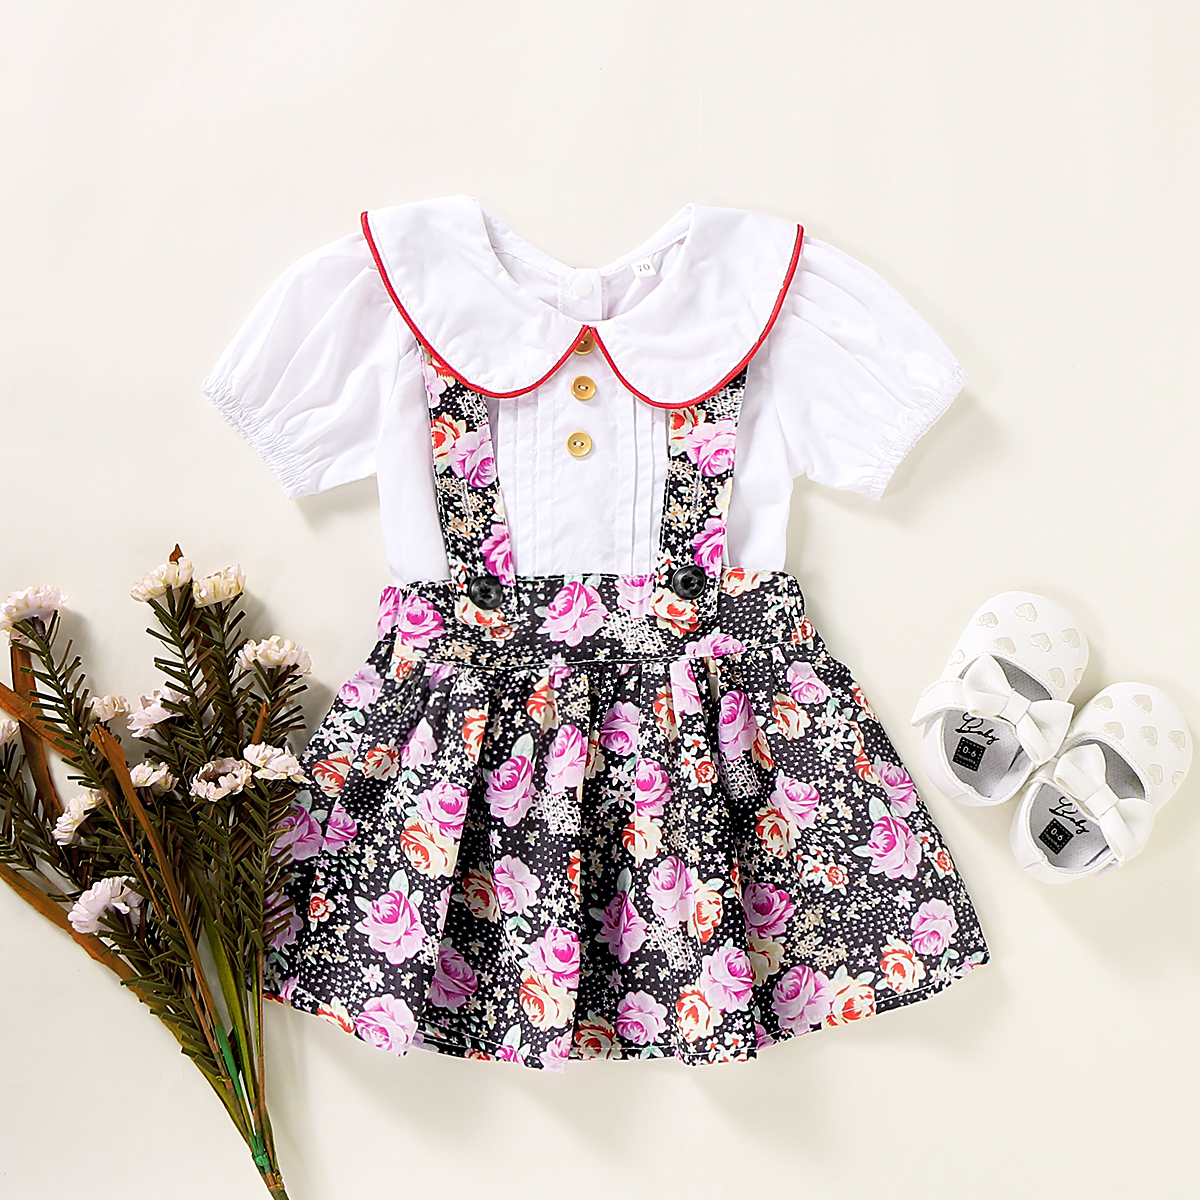 2-piece Baby / Toddler Girl Doll Collar Short-sleeve Top and Floral Suspender Skirt Set